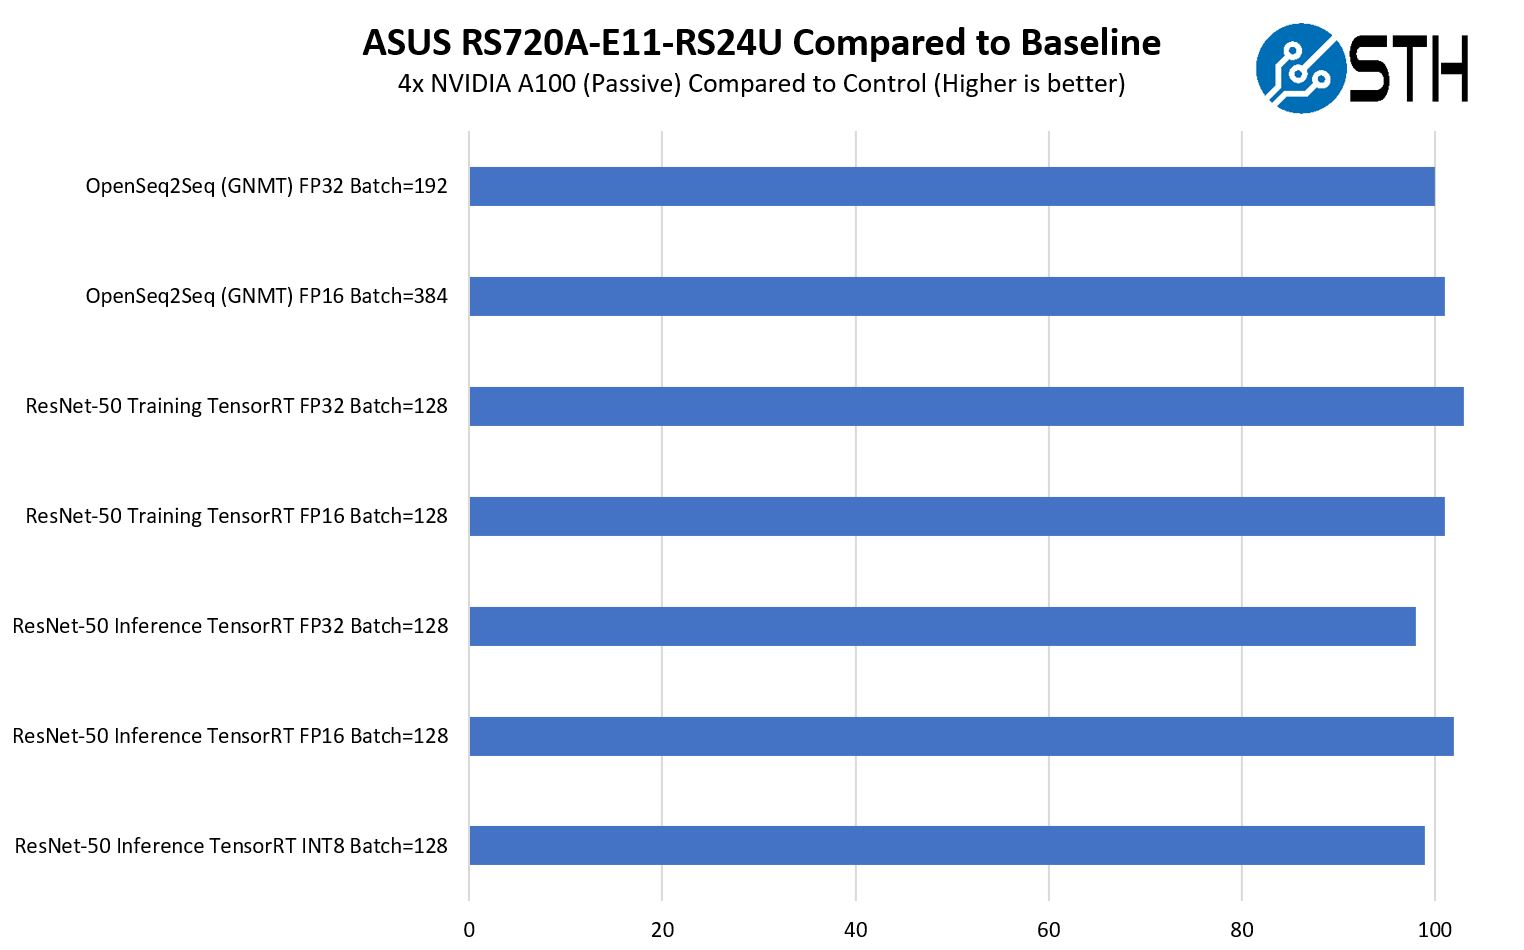 ASUS RS720A E11 RS24U GPU Performance Compared To Control L